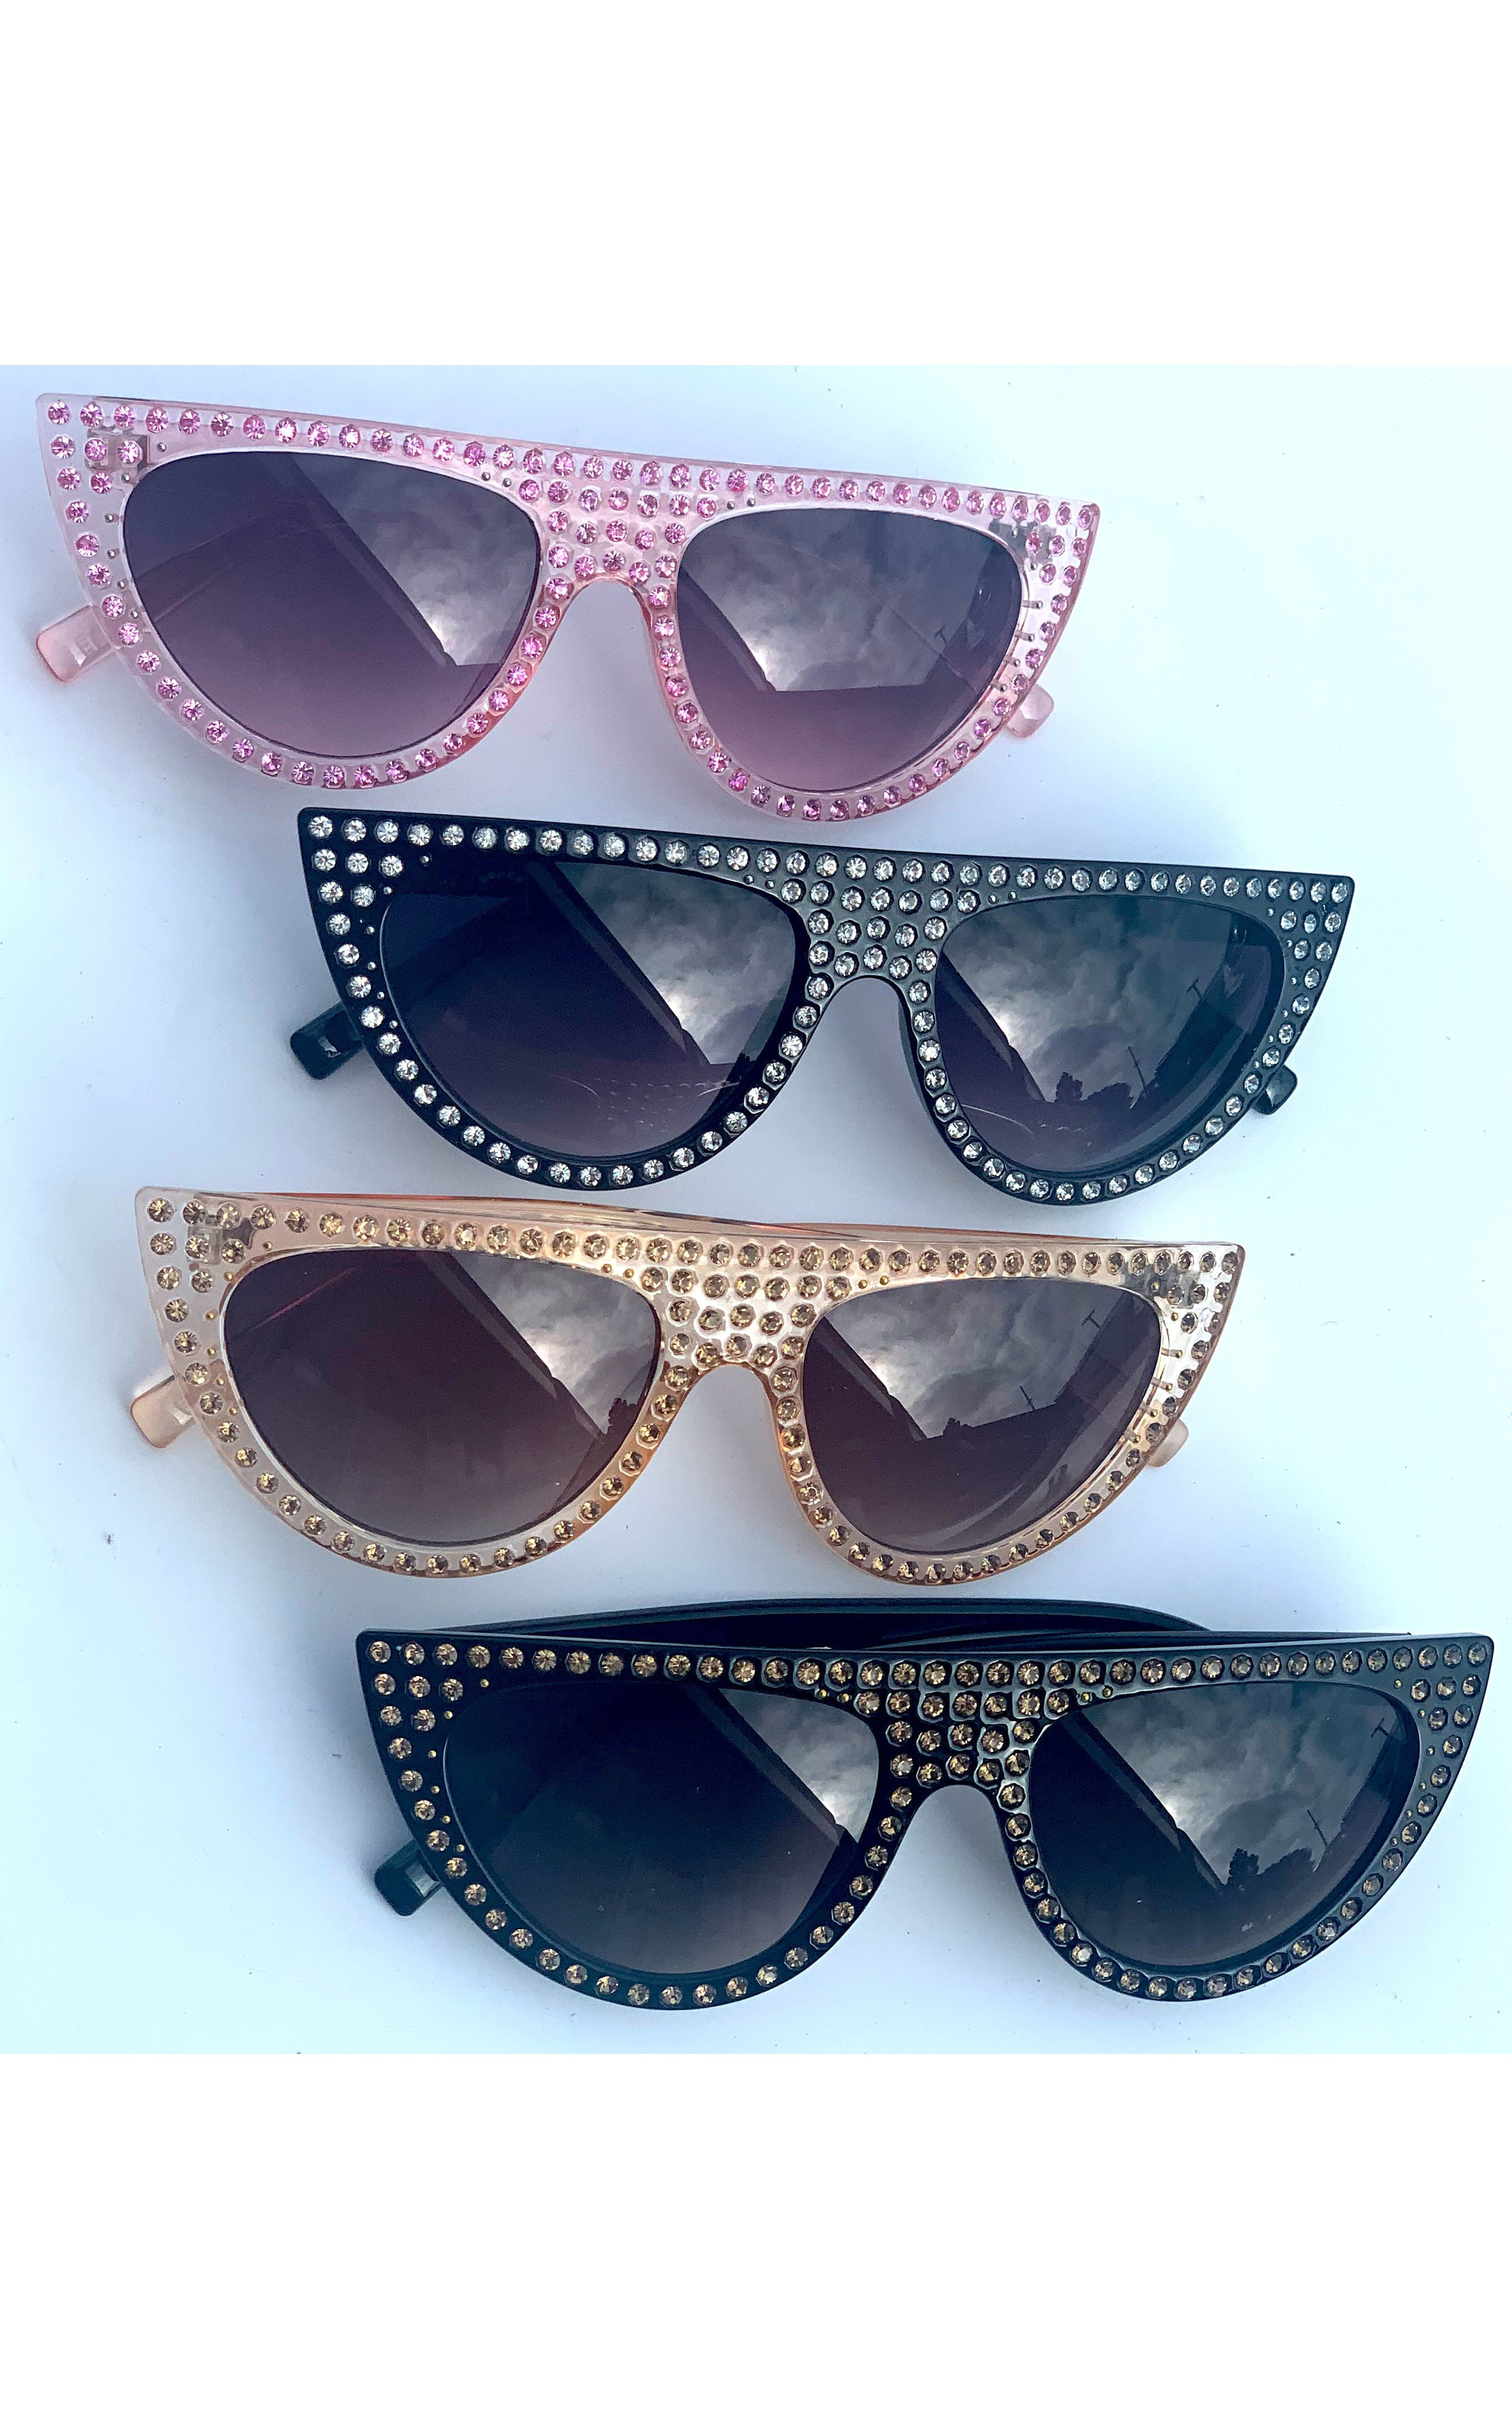 Sunglasses: Rhinestone Sunnies - Chynna Dolls Swimwear